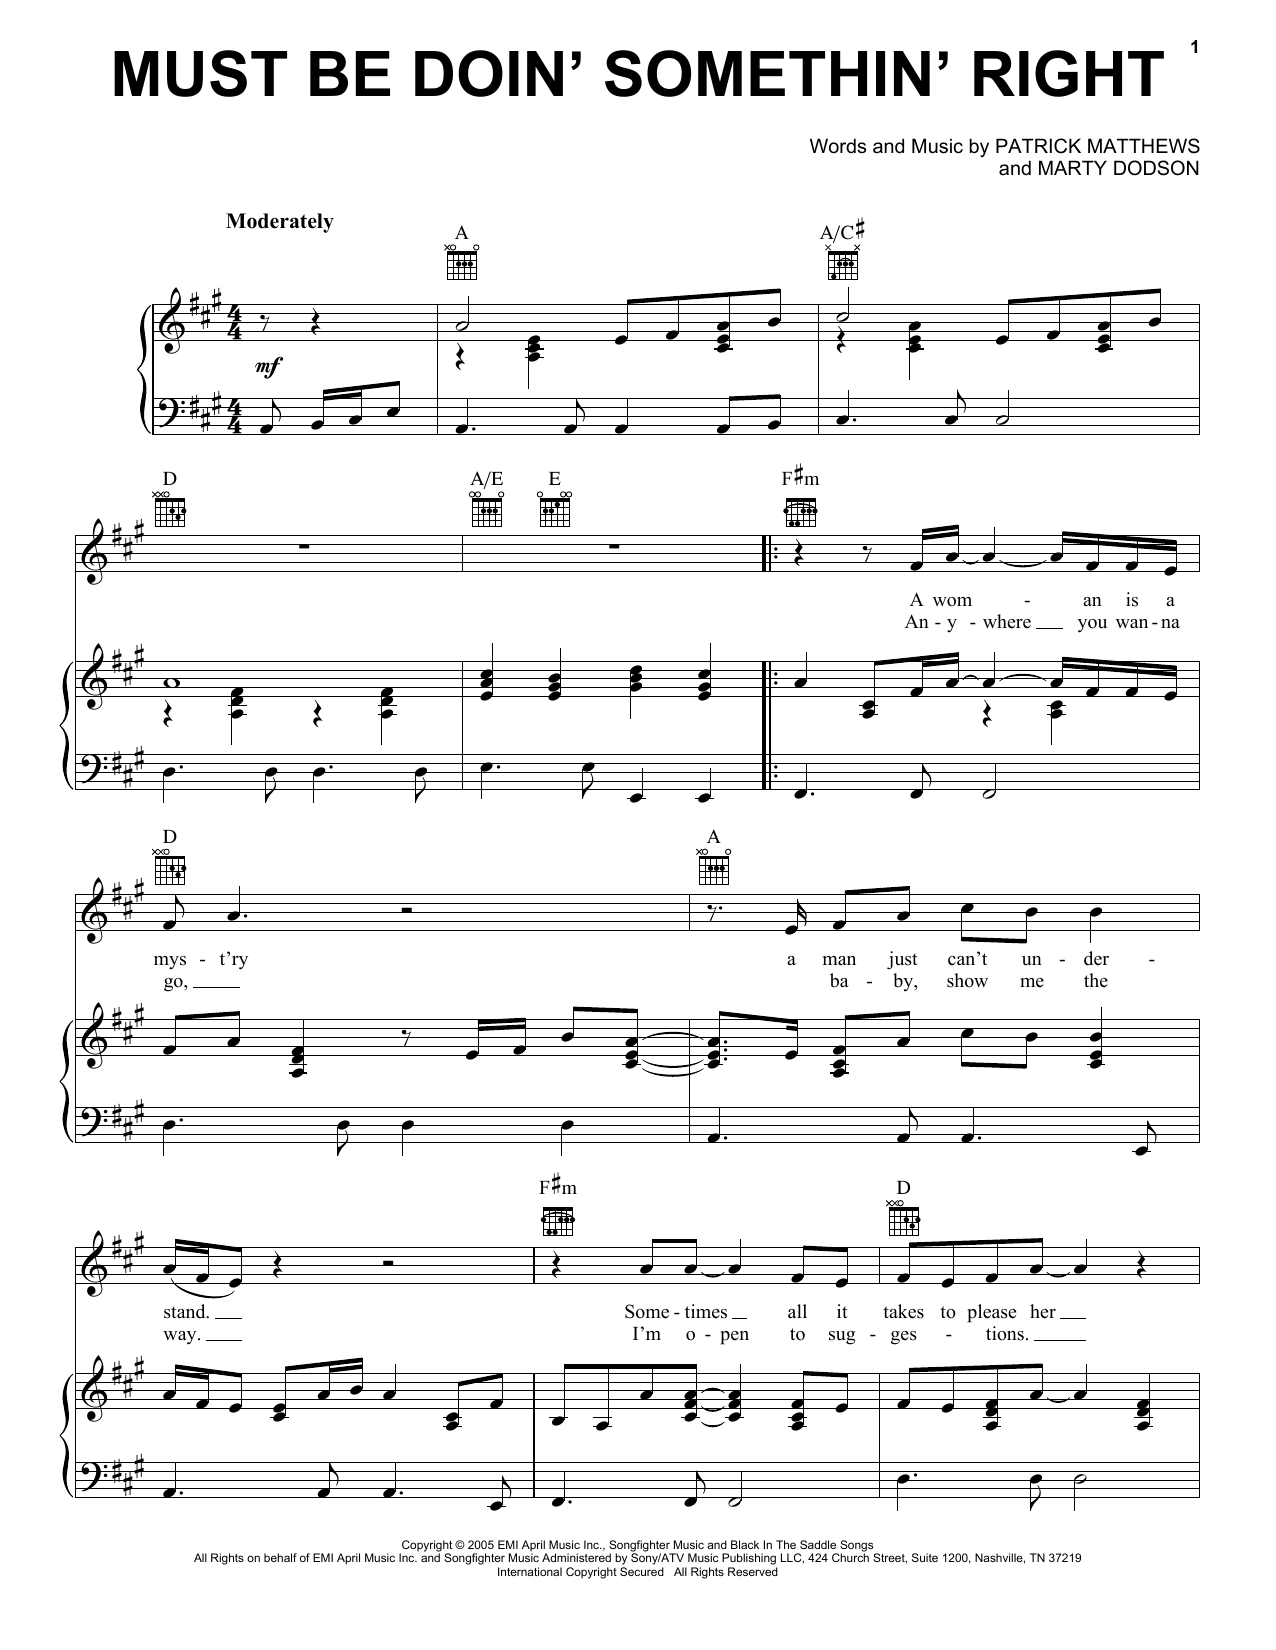 Billy Currington Must Be Doin' Somethin' Right sheet music notes and chords. Download Printable PDF.